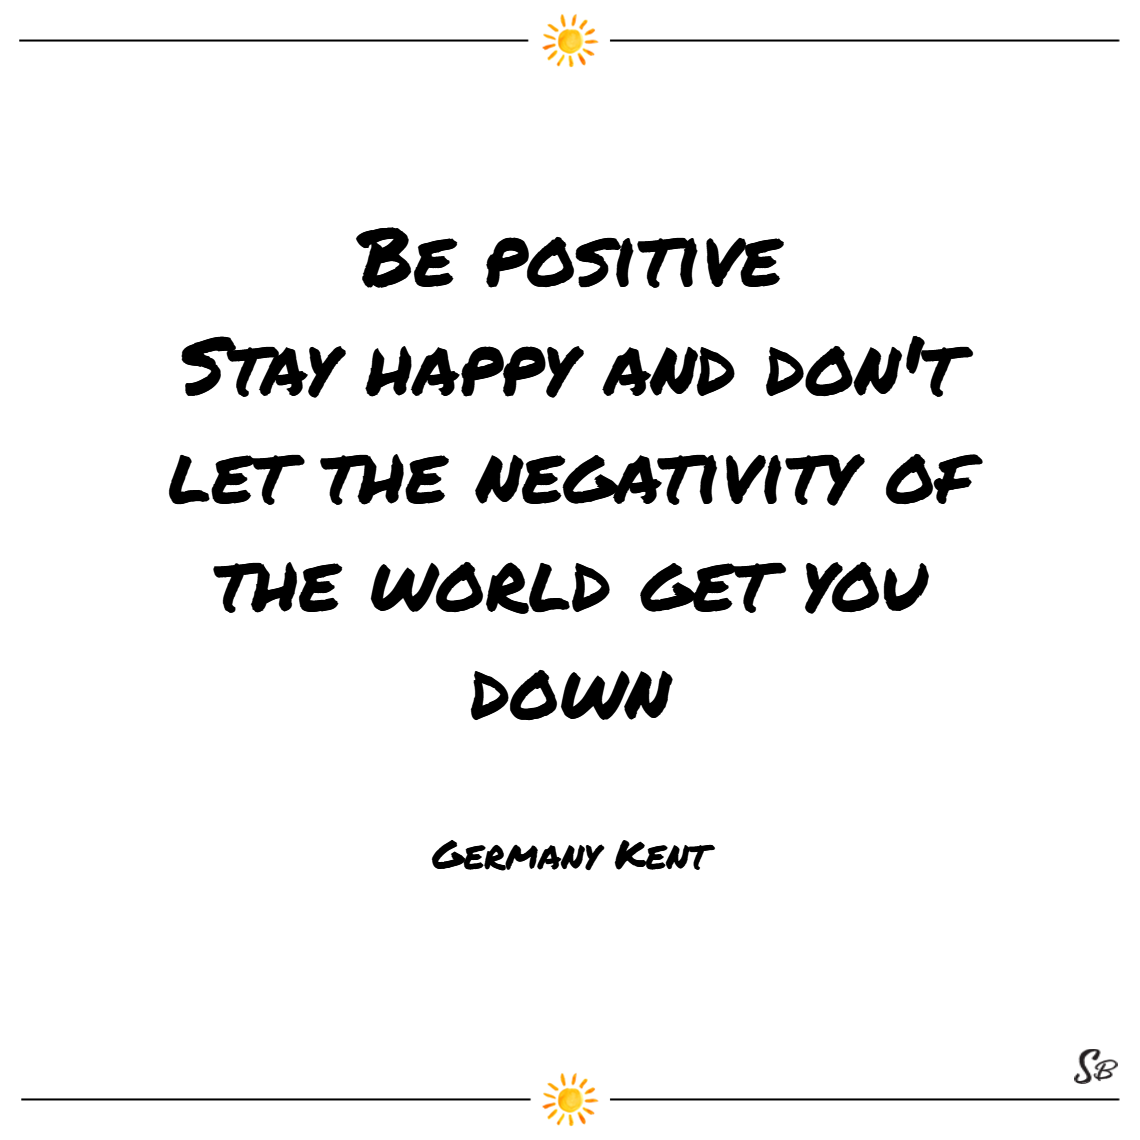 Be positive. stay happy and don't let the negativity of the world get you down. – germany kent cheer up quotes